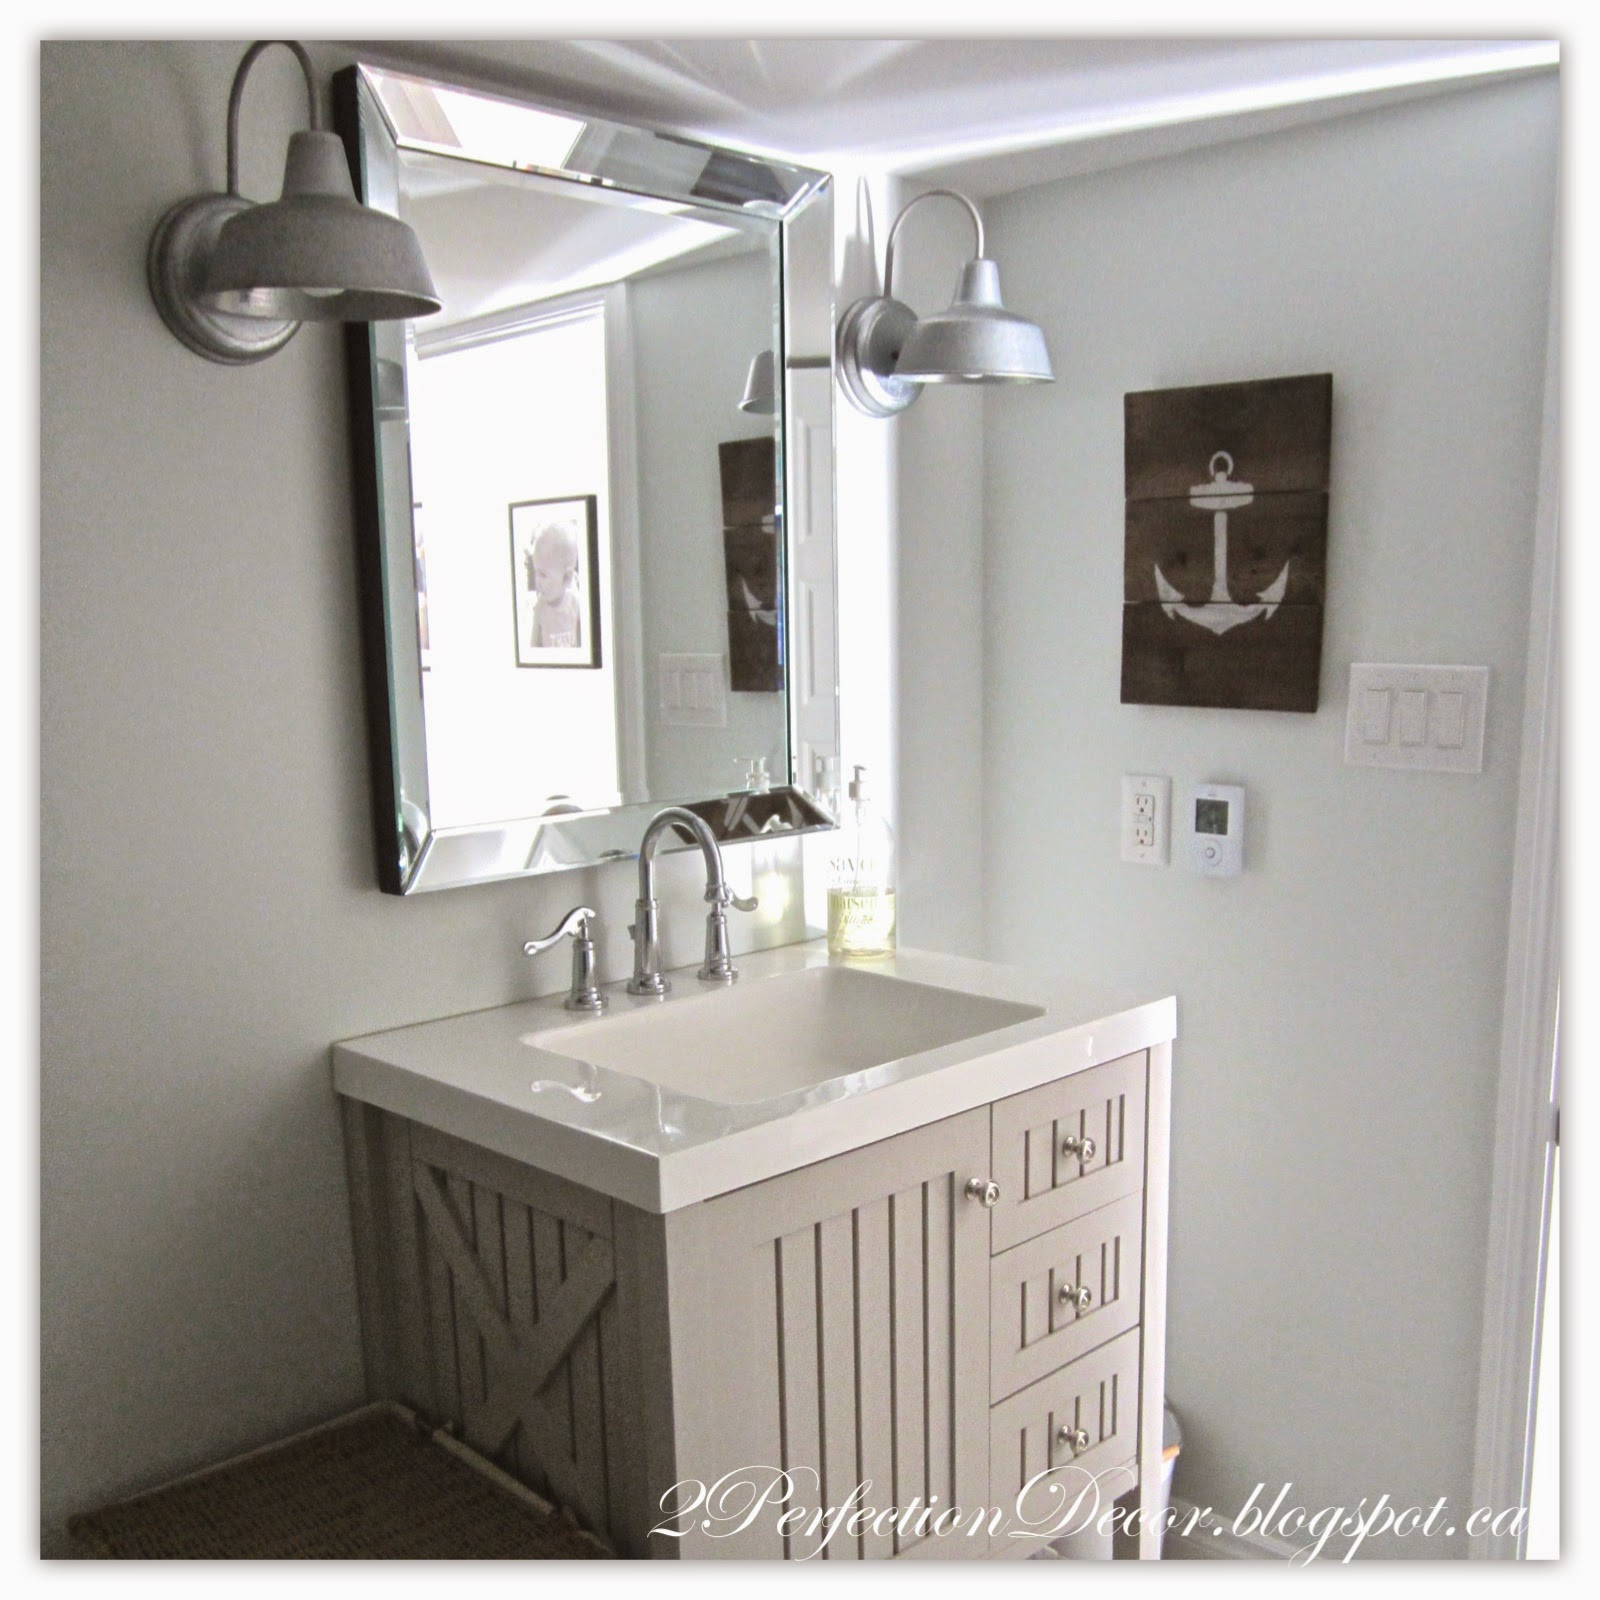 Coastal Bathrooms 2Perfection Decor Basement Coastal Bathroom Reveal